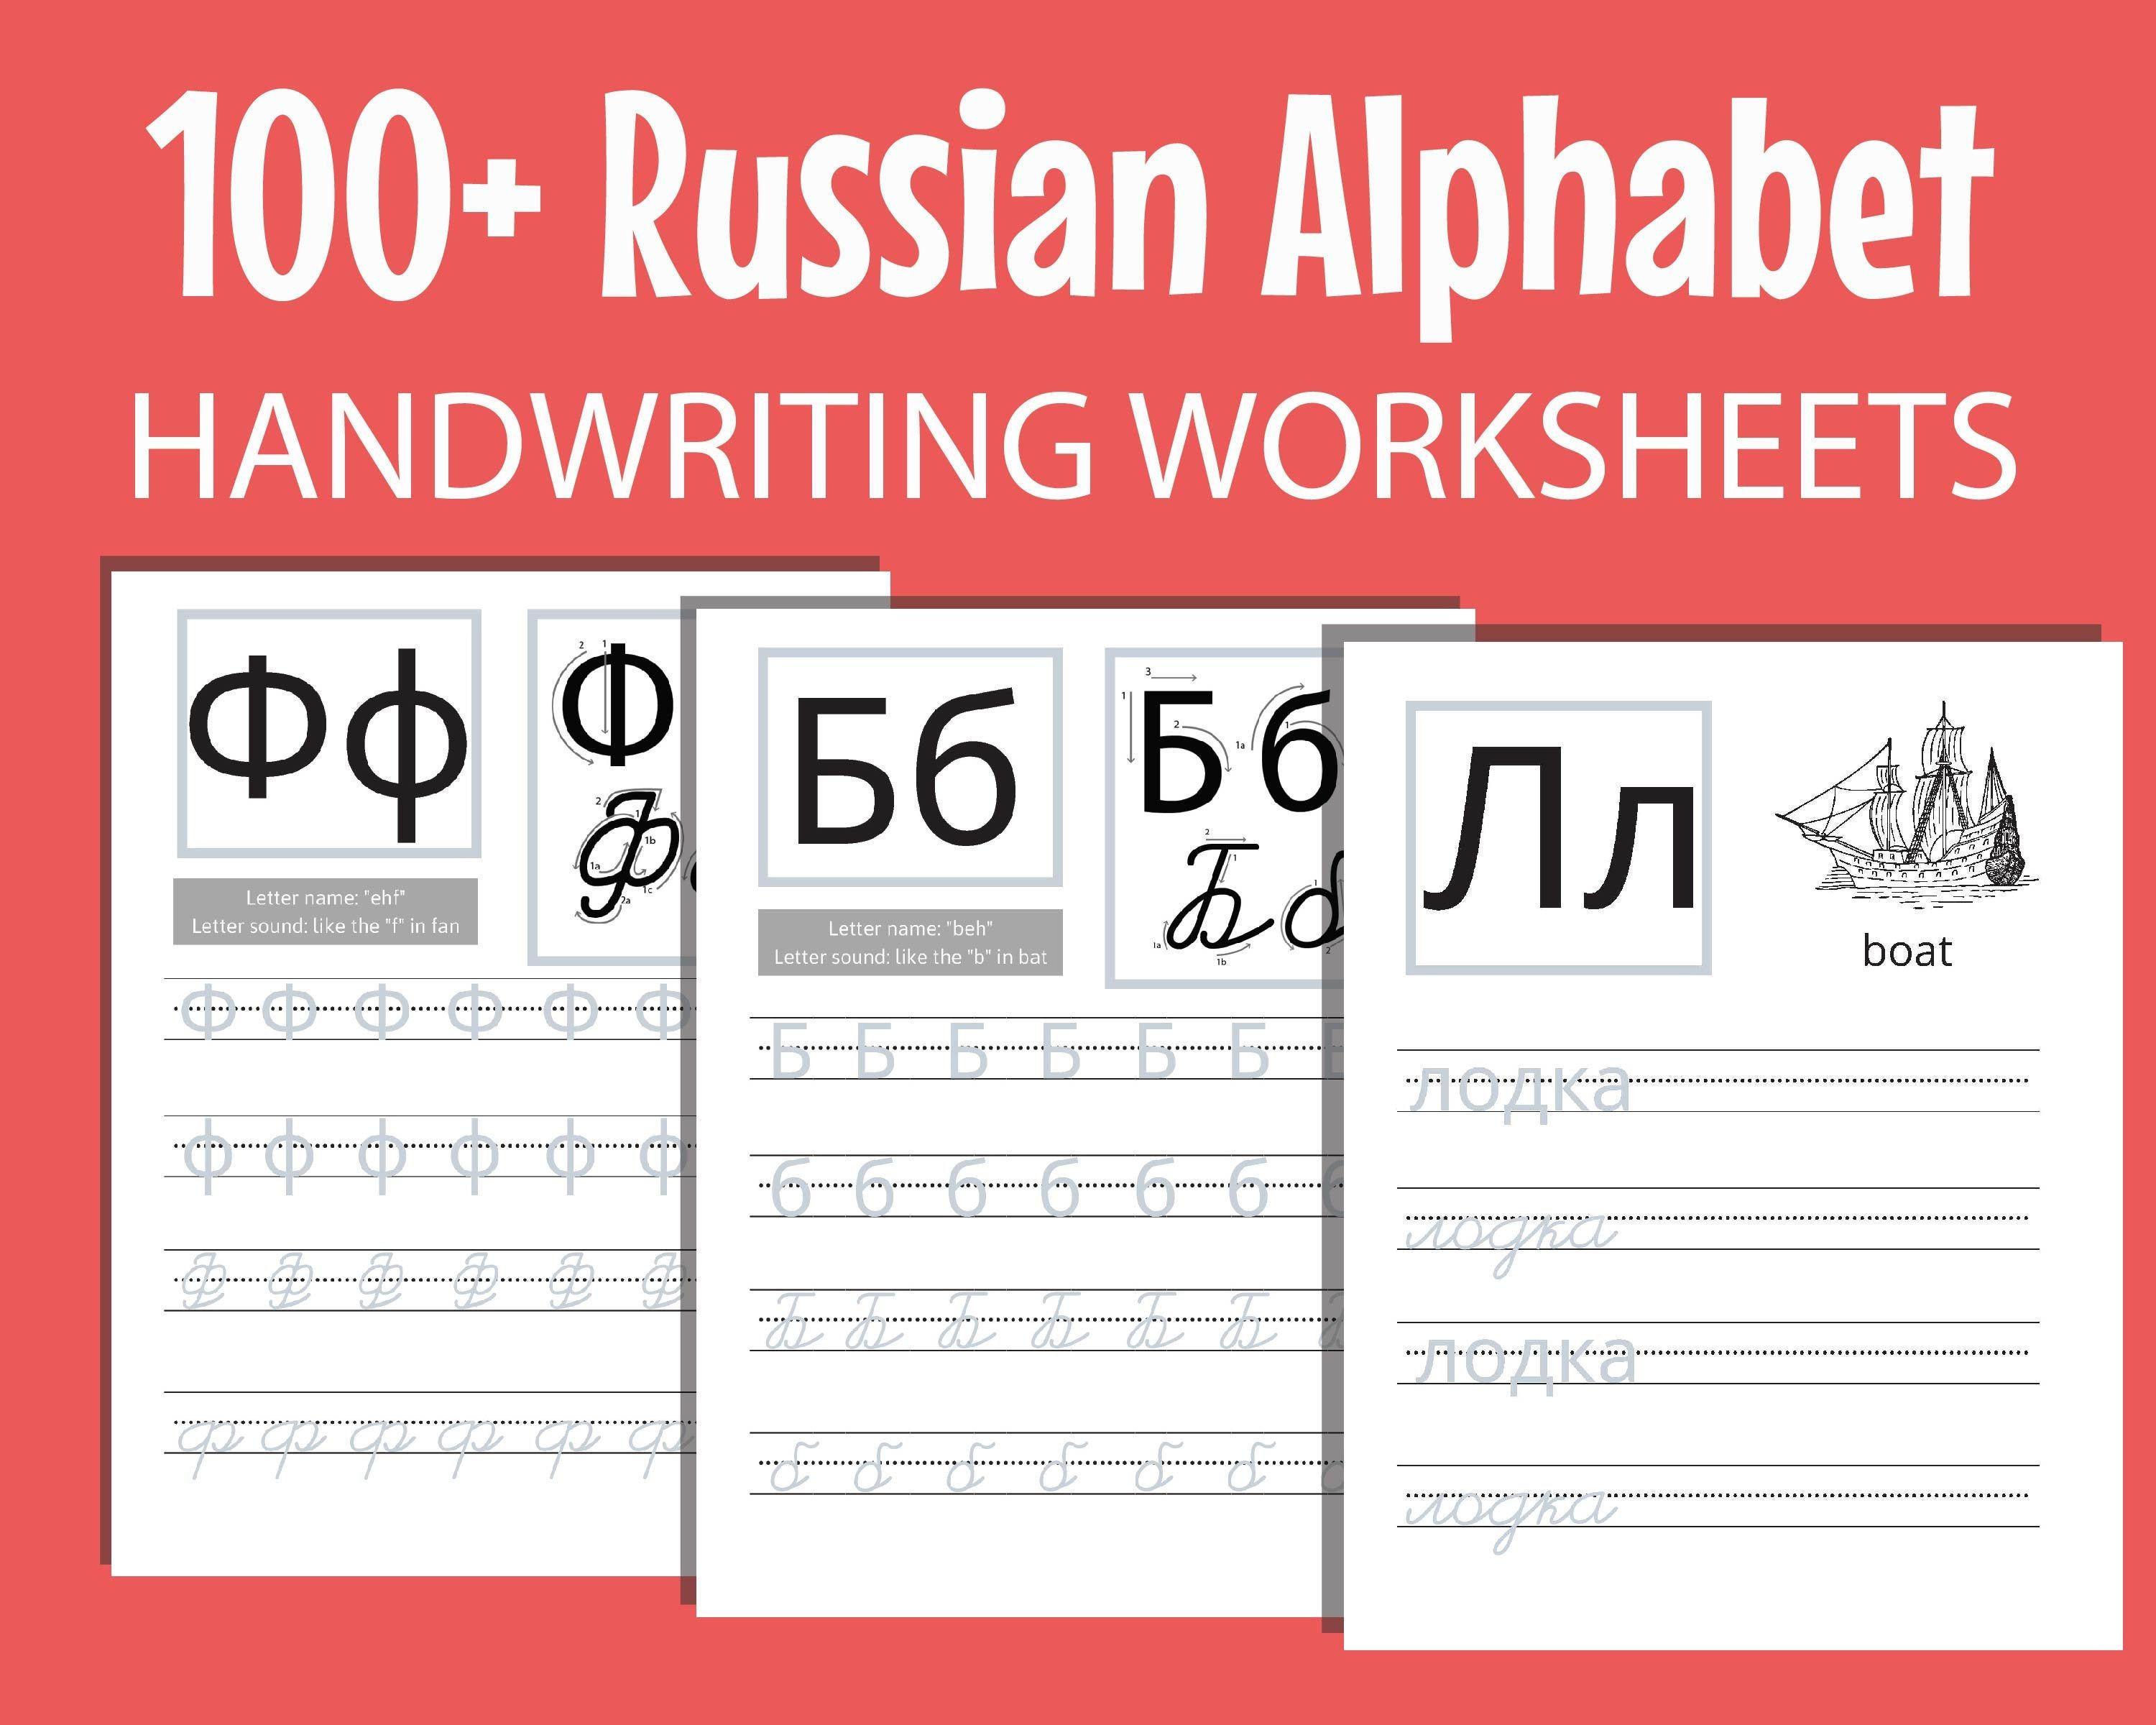 Pin By Oung Sararith On Languages Cursive Writing Practice Sheets Alphabet Practice Sheets Writing Practice Sheets